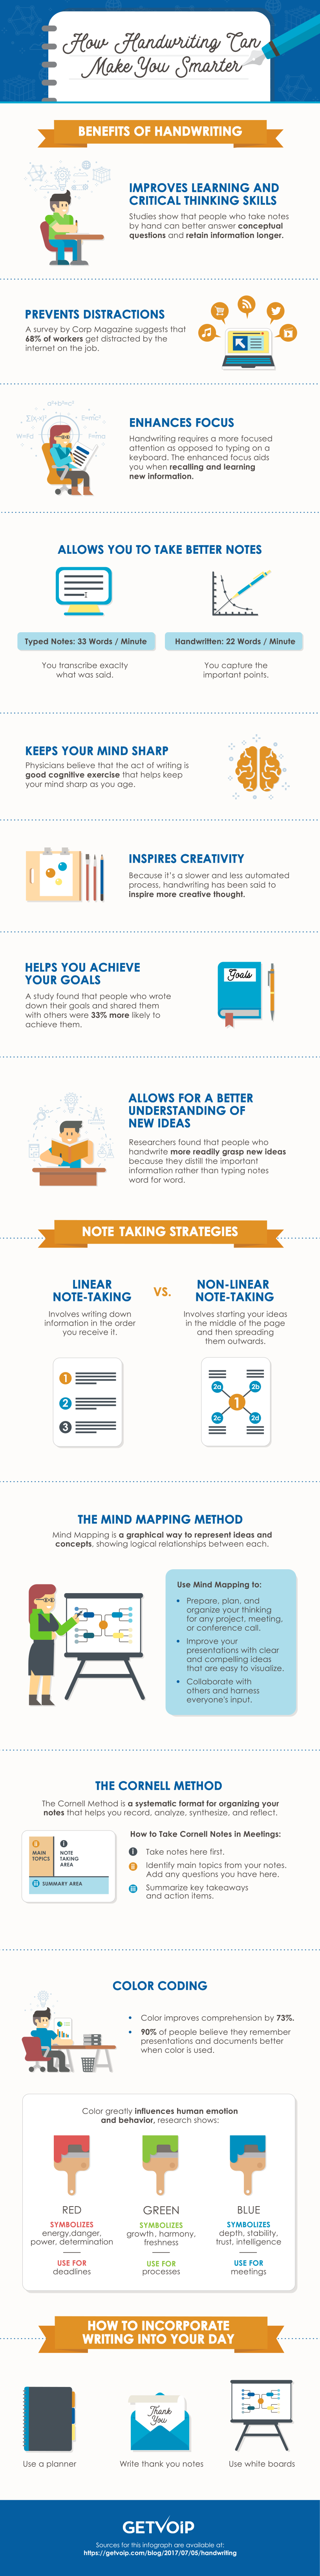 An Interesting Infographic on How Handwriting Can Make You Smarter